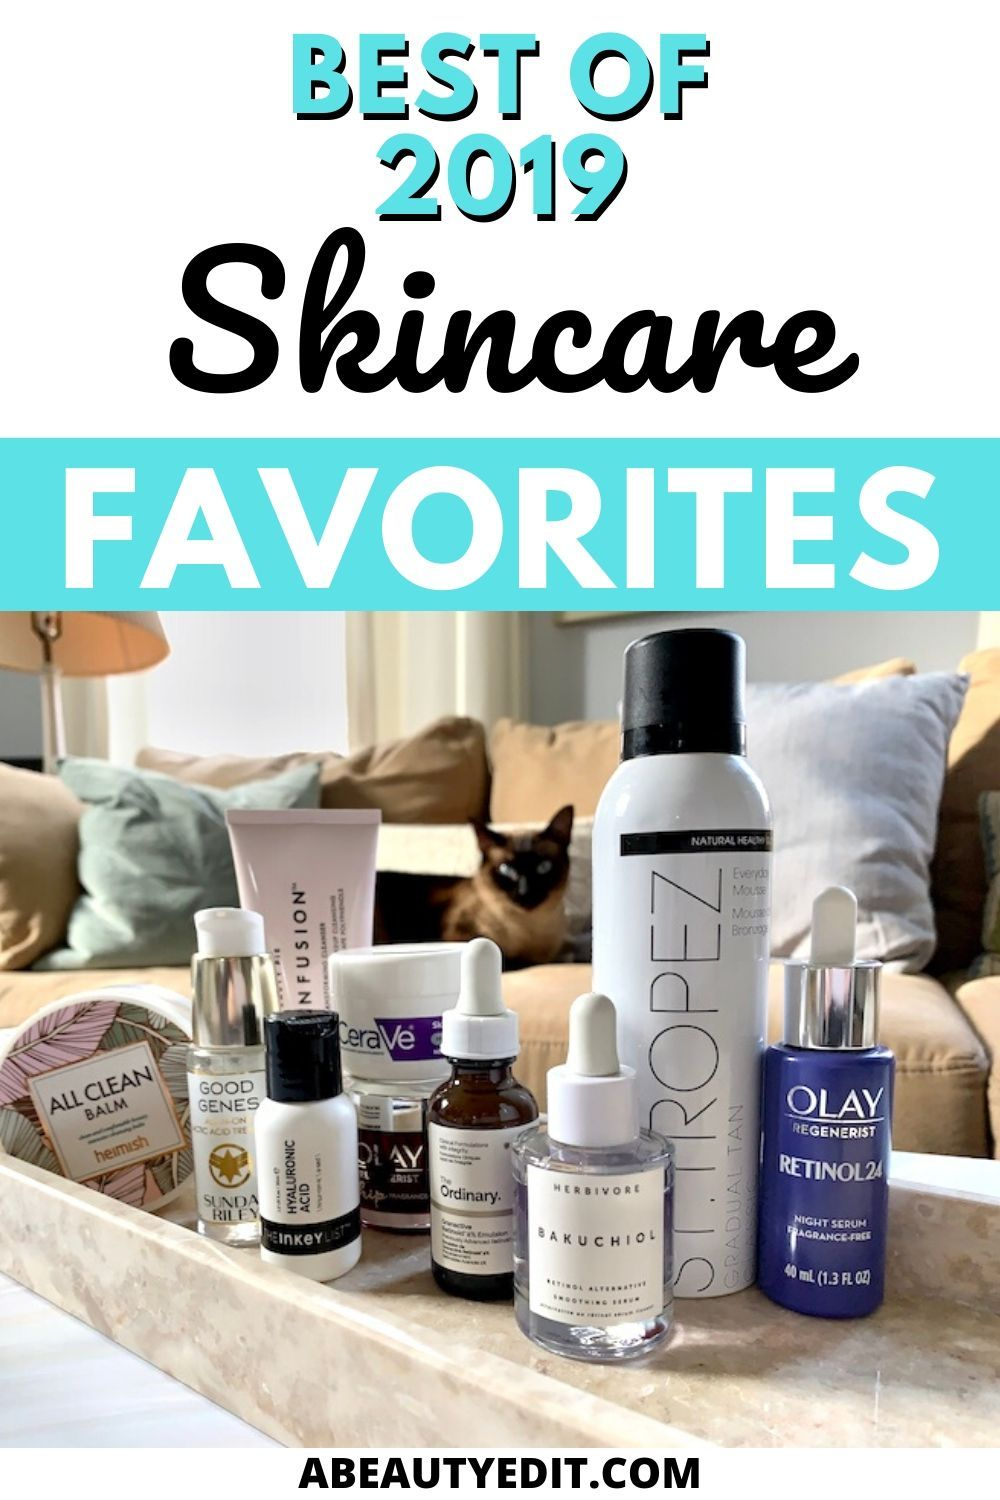 Best Of 2019 Skincare Favorites A Beauty Edit In 2020 Dry Skin Care Favorite Skincare Products Skin Care